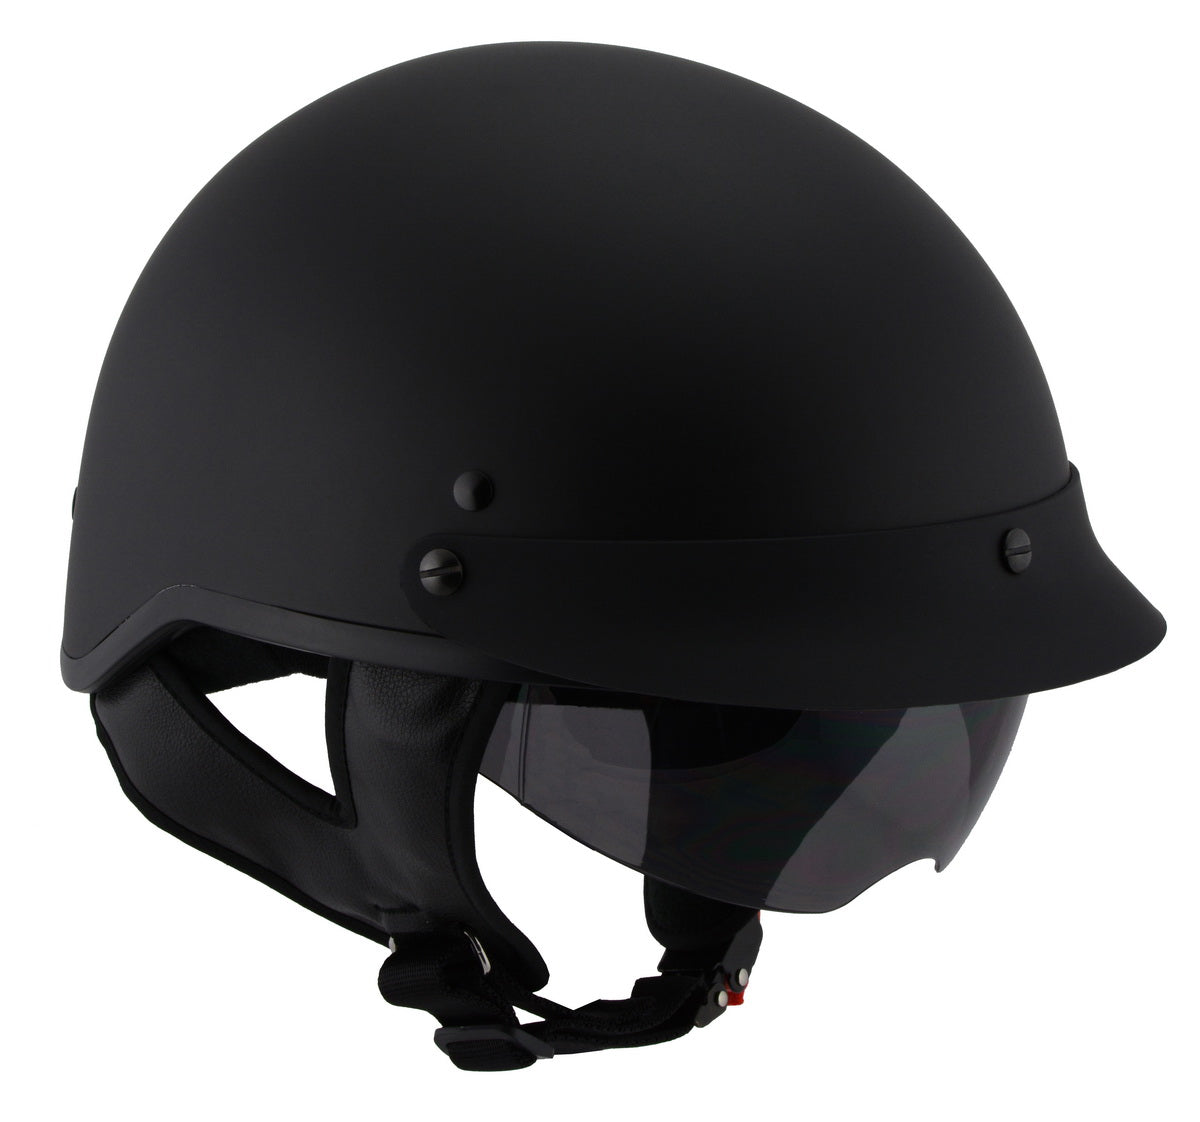 Milwaukee Performance Helmet MPH9720DOT 'Momentum' Matte Black Helmet